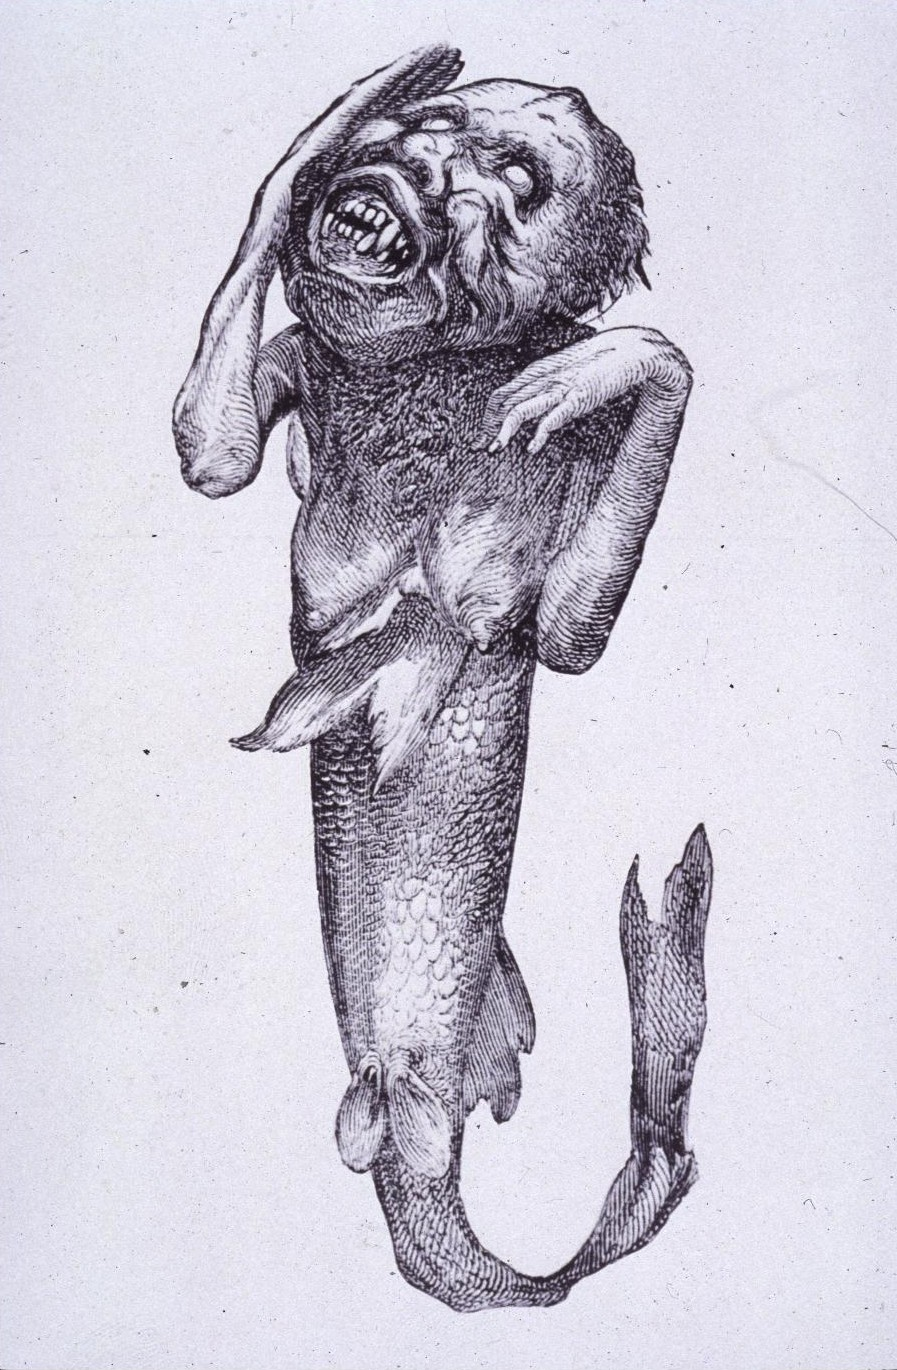 The Feejee Mermaid was exhibited in 1842. By P. T. Barnum (P. T. Barnum) [Public domain], via Wikimedia Commons